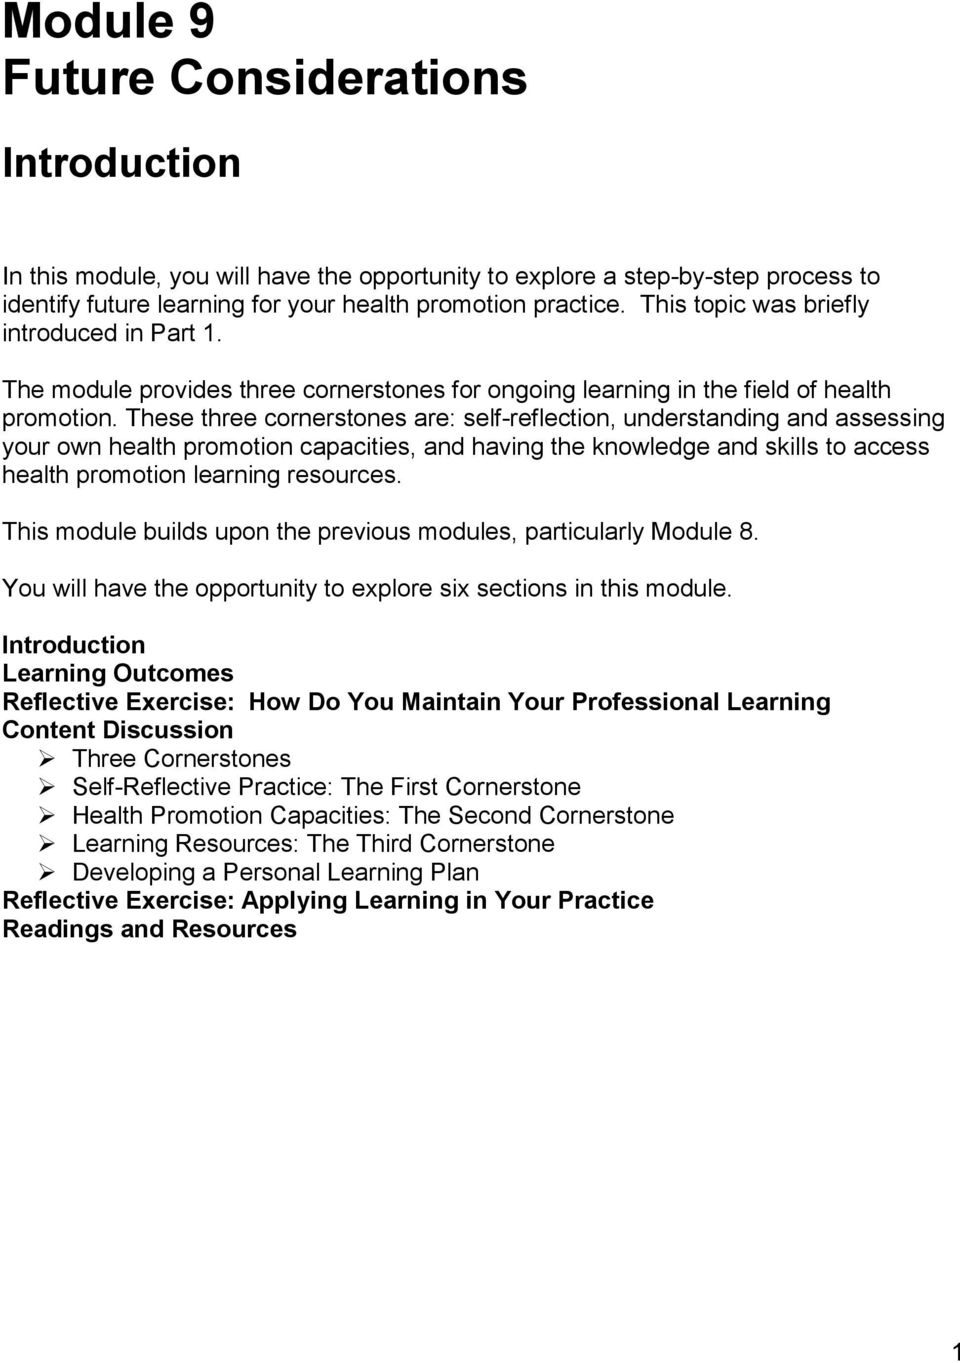 These three cornerstones are: self-reflection, understanding and assessing your own health promotion capacities, and having the knowledge and skills to access health promotion learning resources.